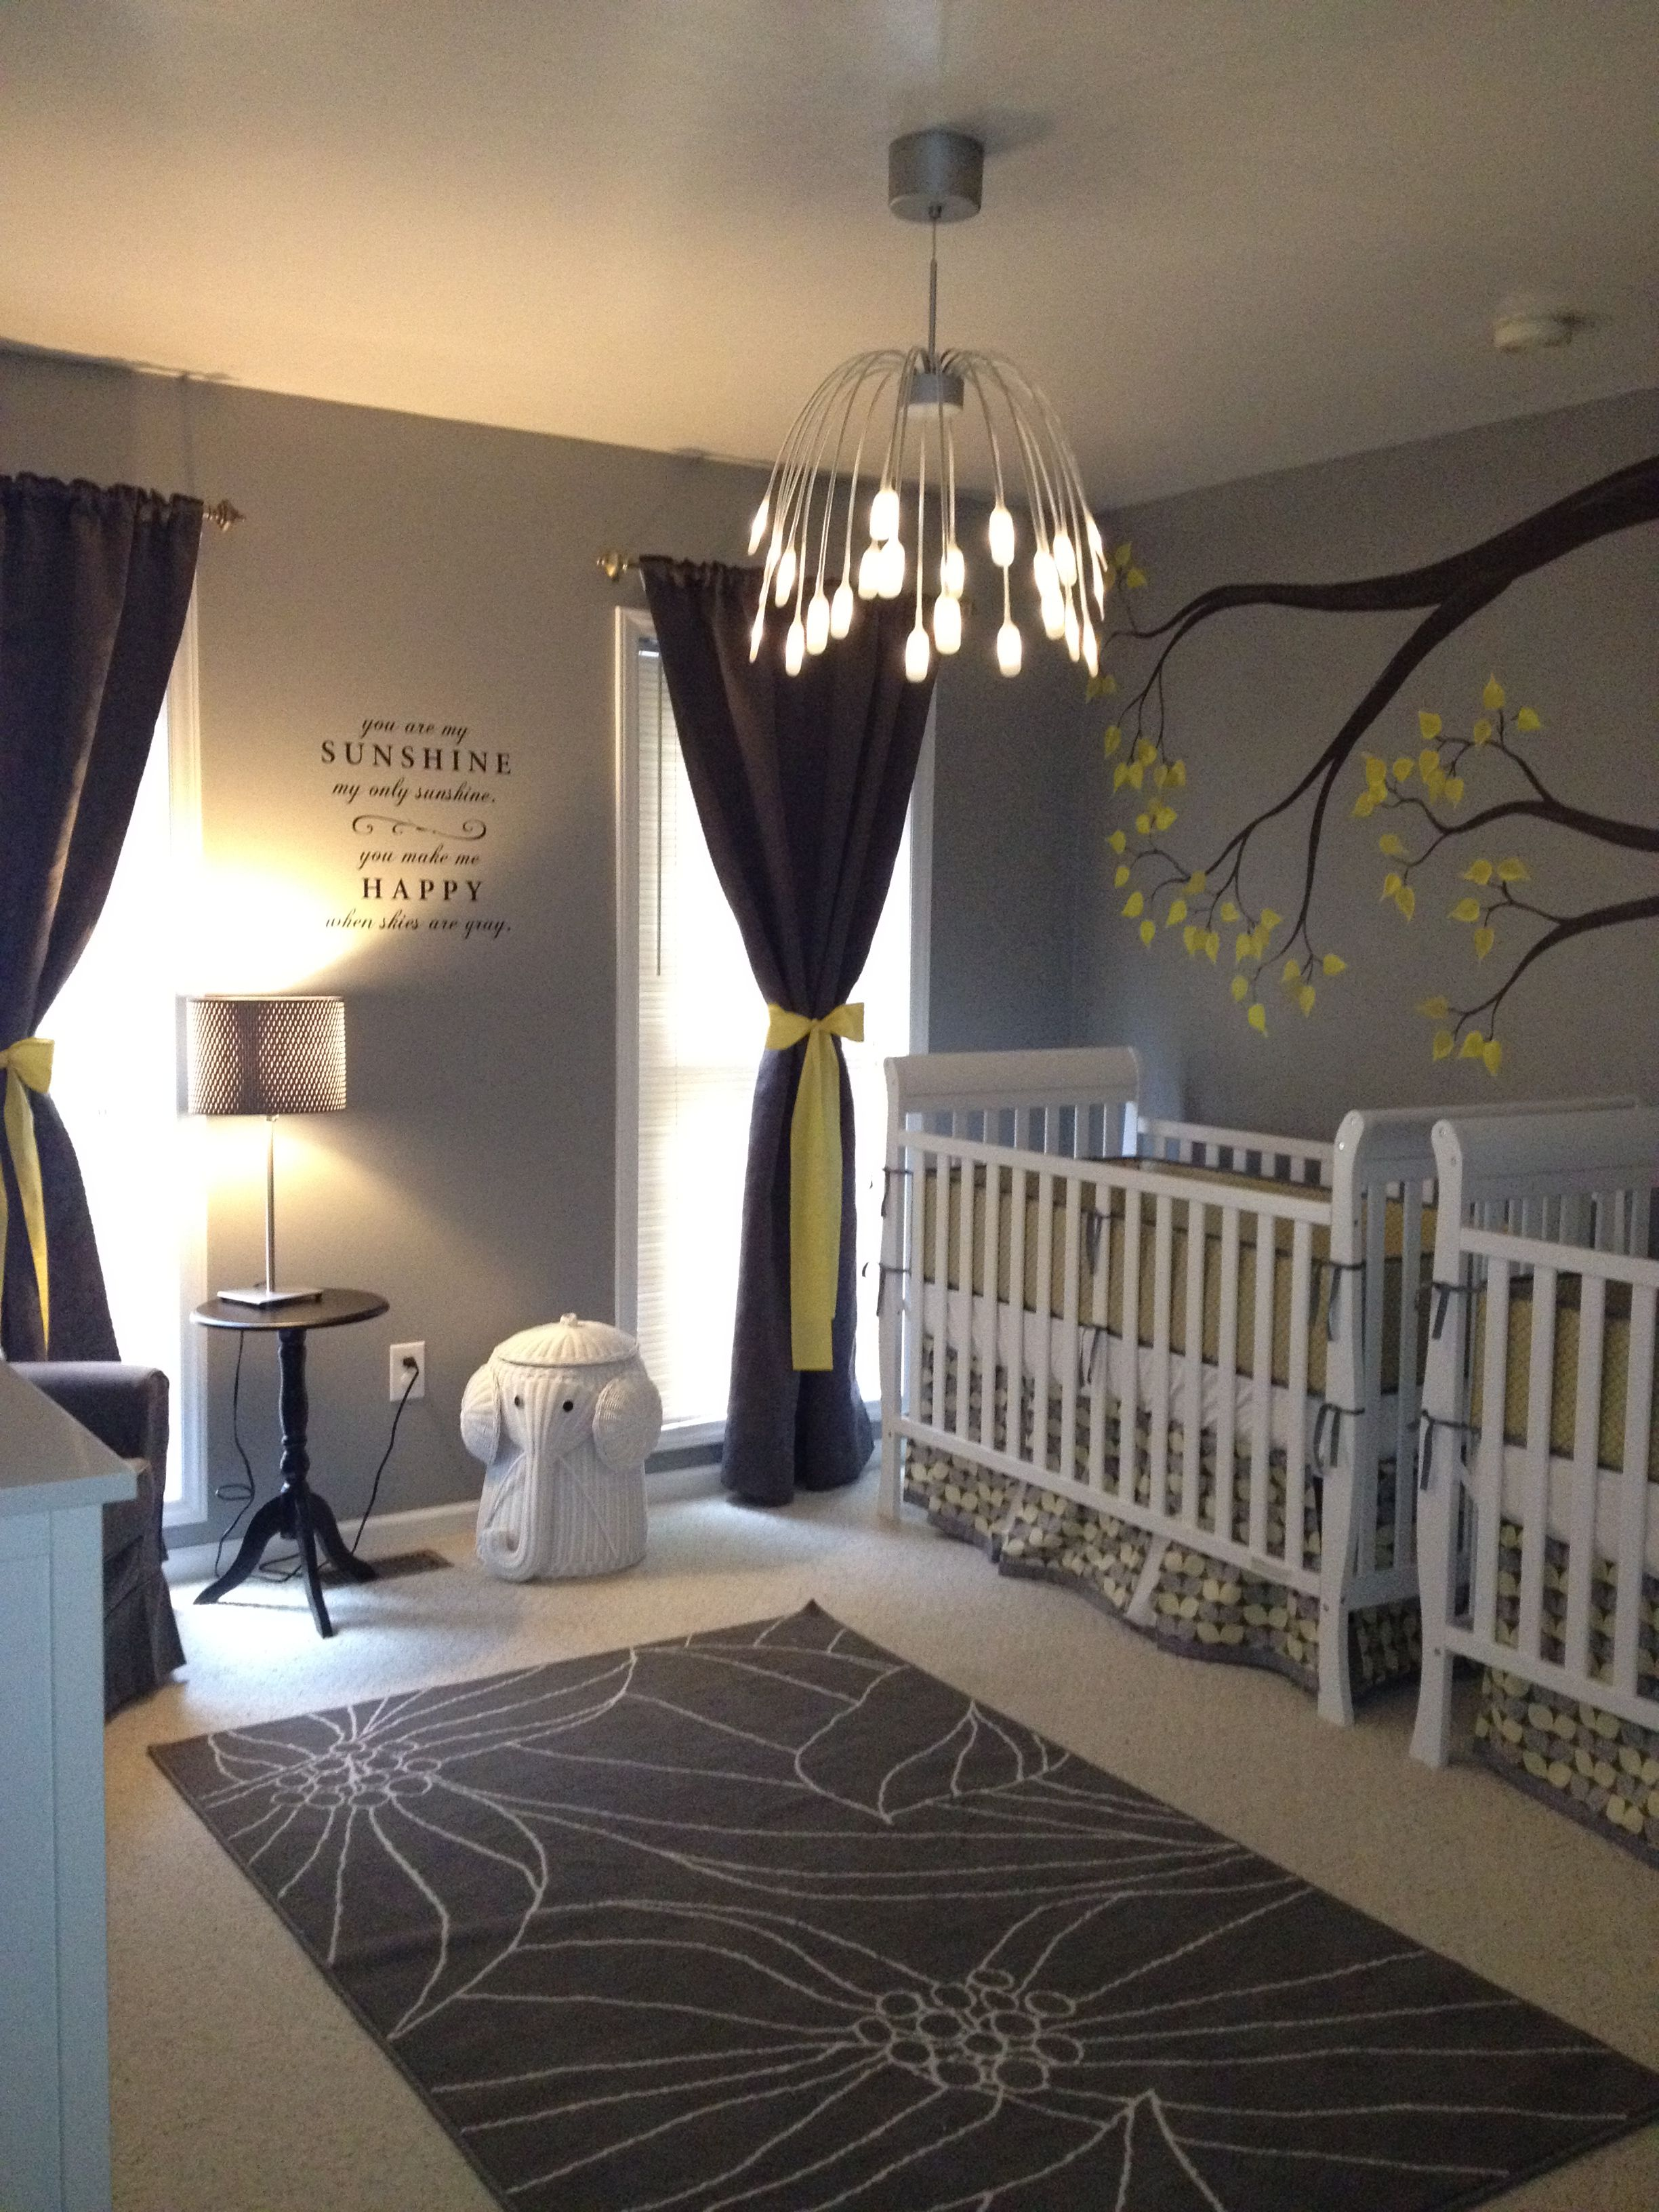 Pin By Stacy Viers On Nursery Ideas Twin Baby Rooms Nursery